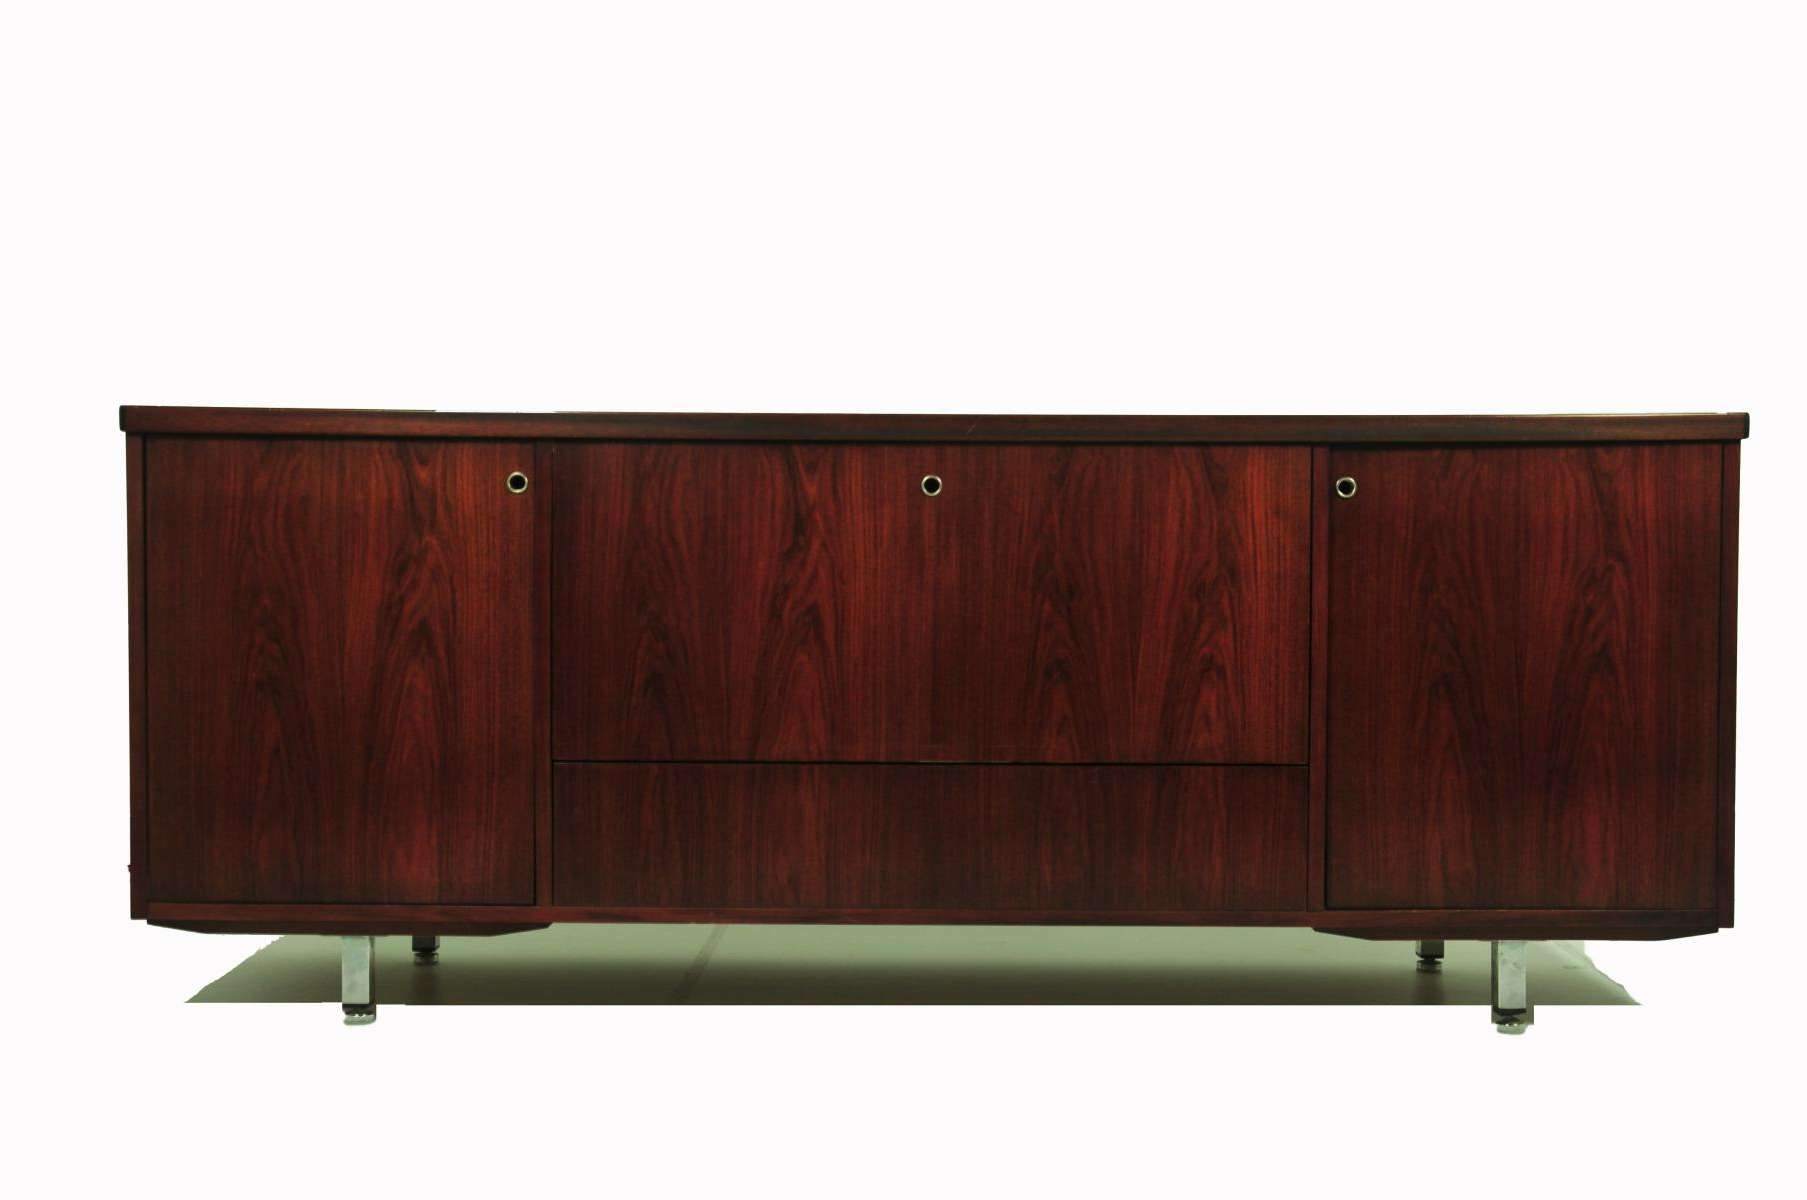 Vintage Rosewood Sideboard With Bar Cabinet For Sale At Pamono Inside Sideboards Bar Cabinet (Gallery 4 of 20)